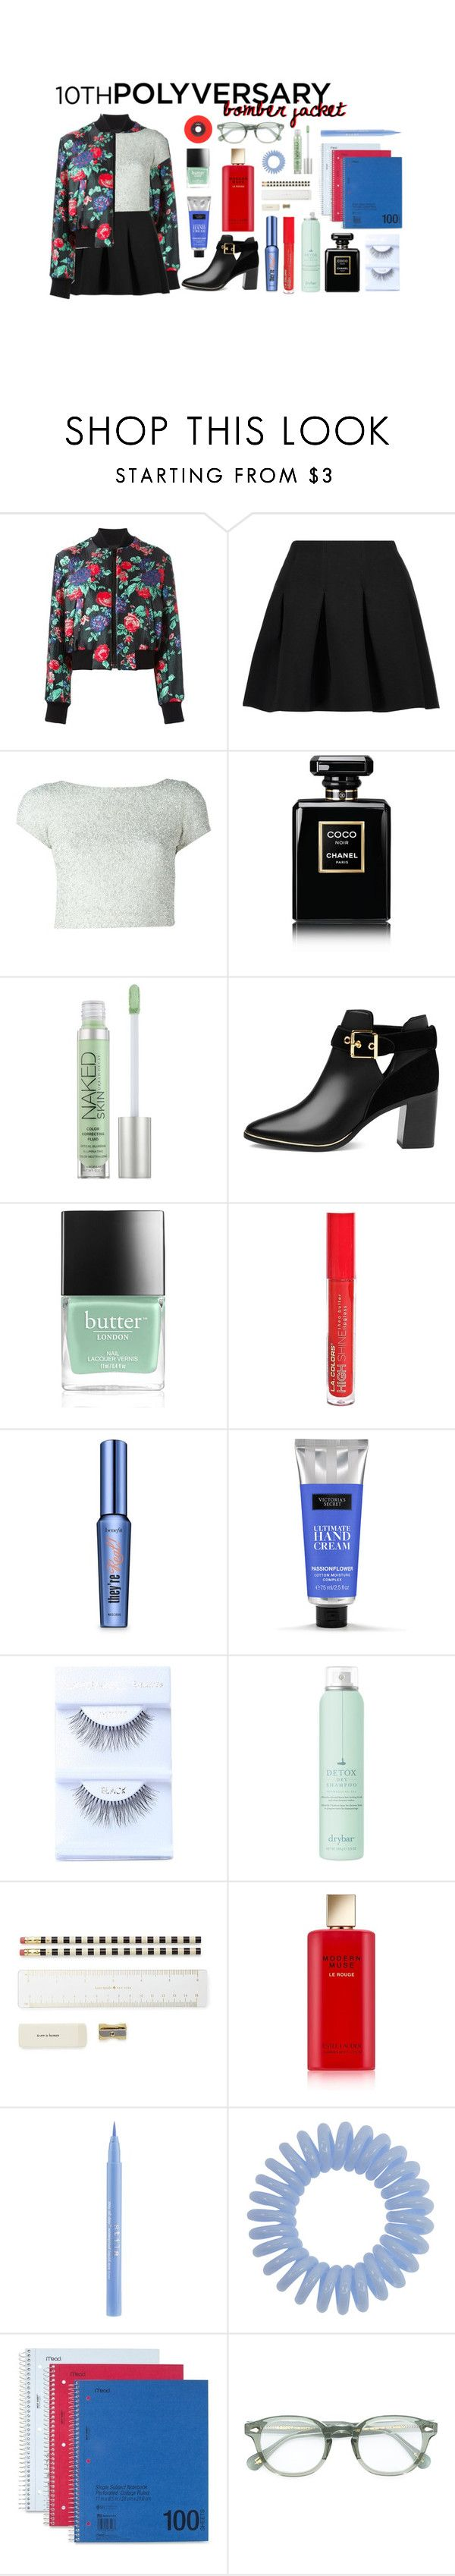 """""""Celebrate Our 10th Polyversary!"""" by fernweeh on Polyvore featuring moda, MSGM, T By Alexander Wang, Alice + Olivia, Chanel, Urban Decay, Ted Baker, Butter London, L.A. Colors i Benefit"""